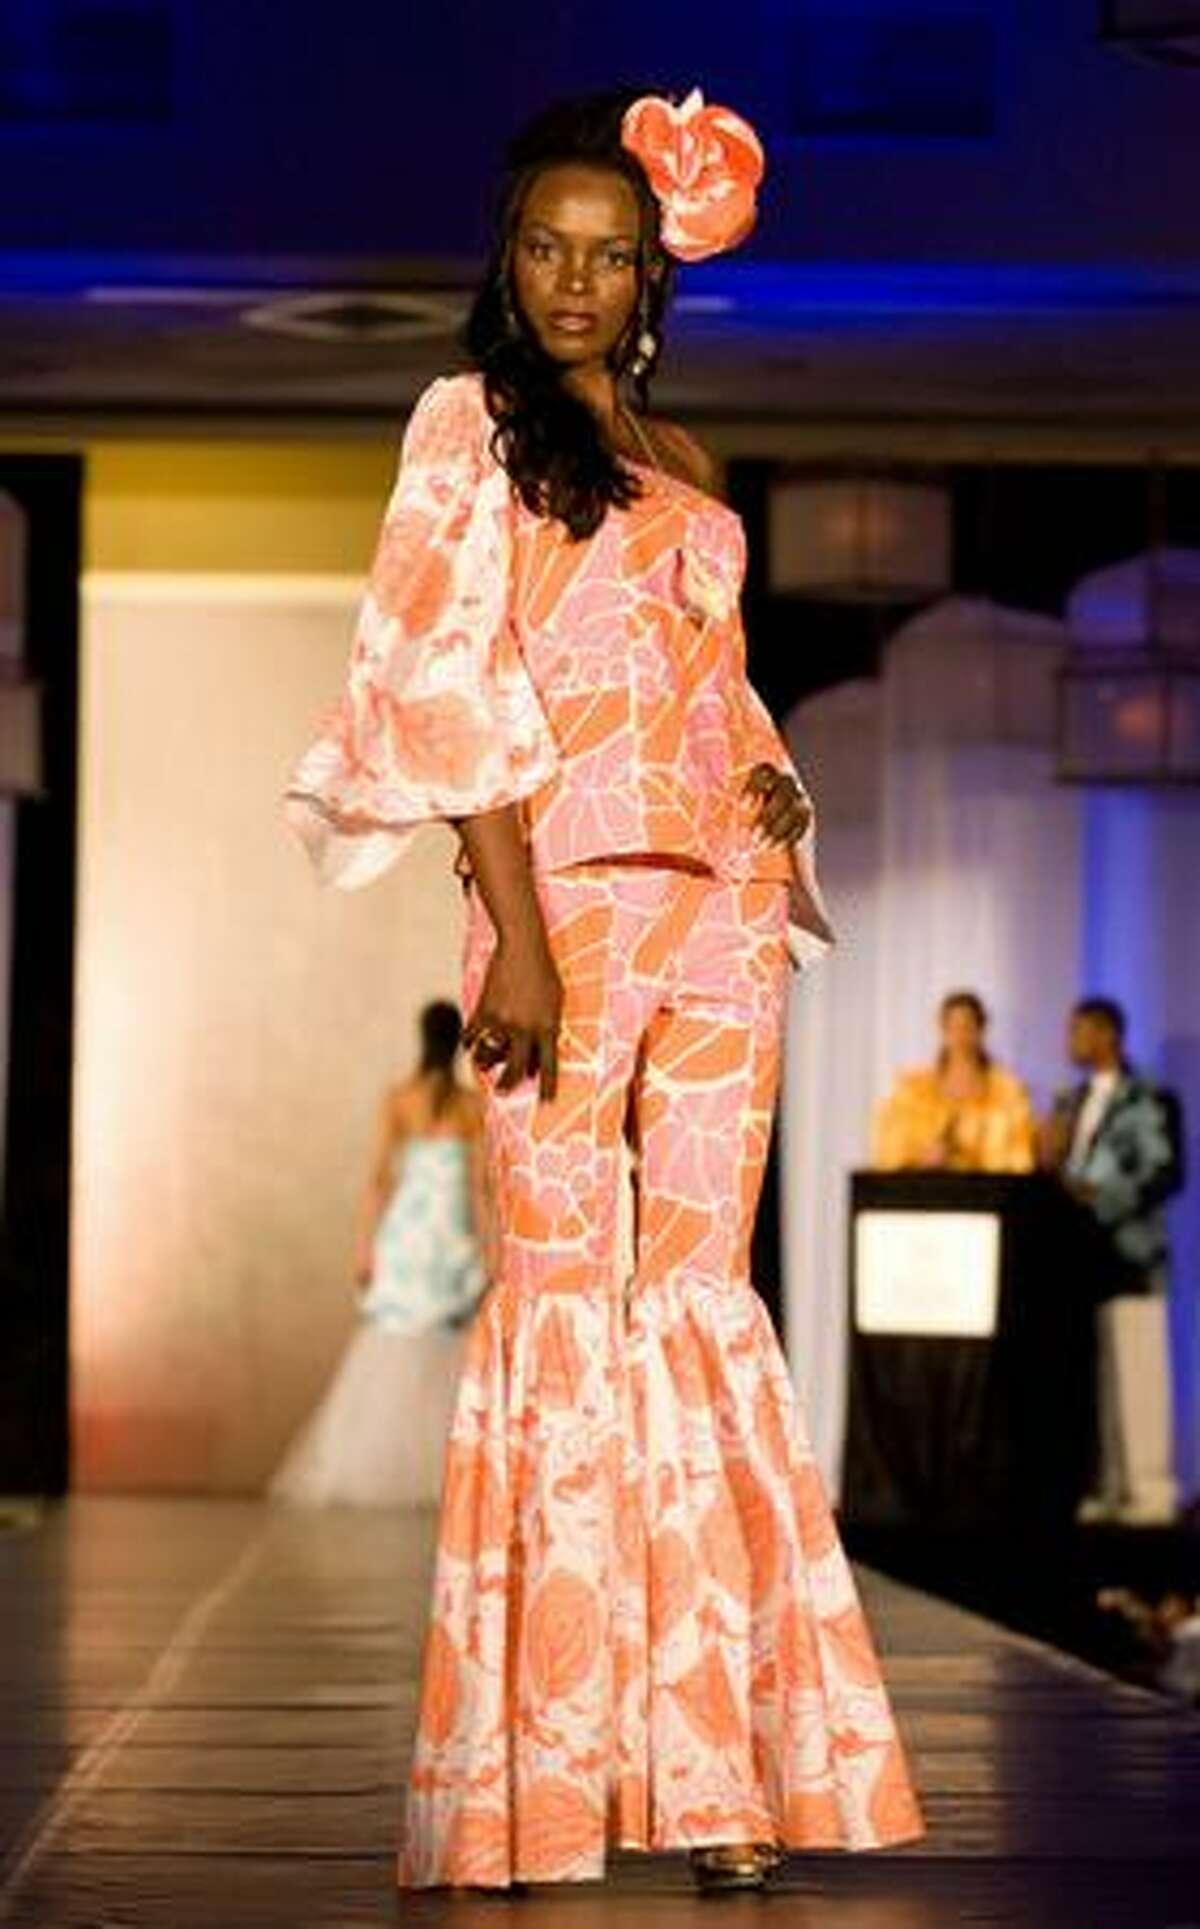 Nelsa Alves, Miss Angola, models a creation designed by Rachel Turnquest-Garcia of Rachel's Boutique at the Fashion Showcase at the Sheraton Nassau Beach Resort in the Bahamas on Aug. 12, 2009. The outfits shown were created and tailored for each Miss Universe contestant featuring Bahamian fabrics. The 84 delegates are in Nassau competing for the title of Miss Universe 2009, which will be decided Sunday night.